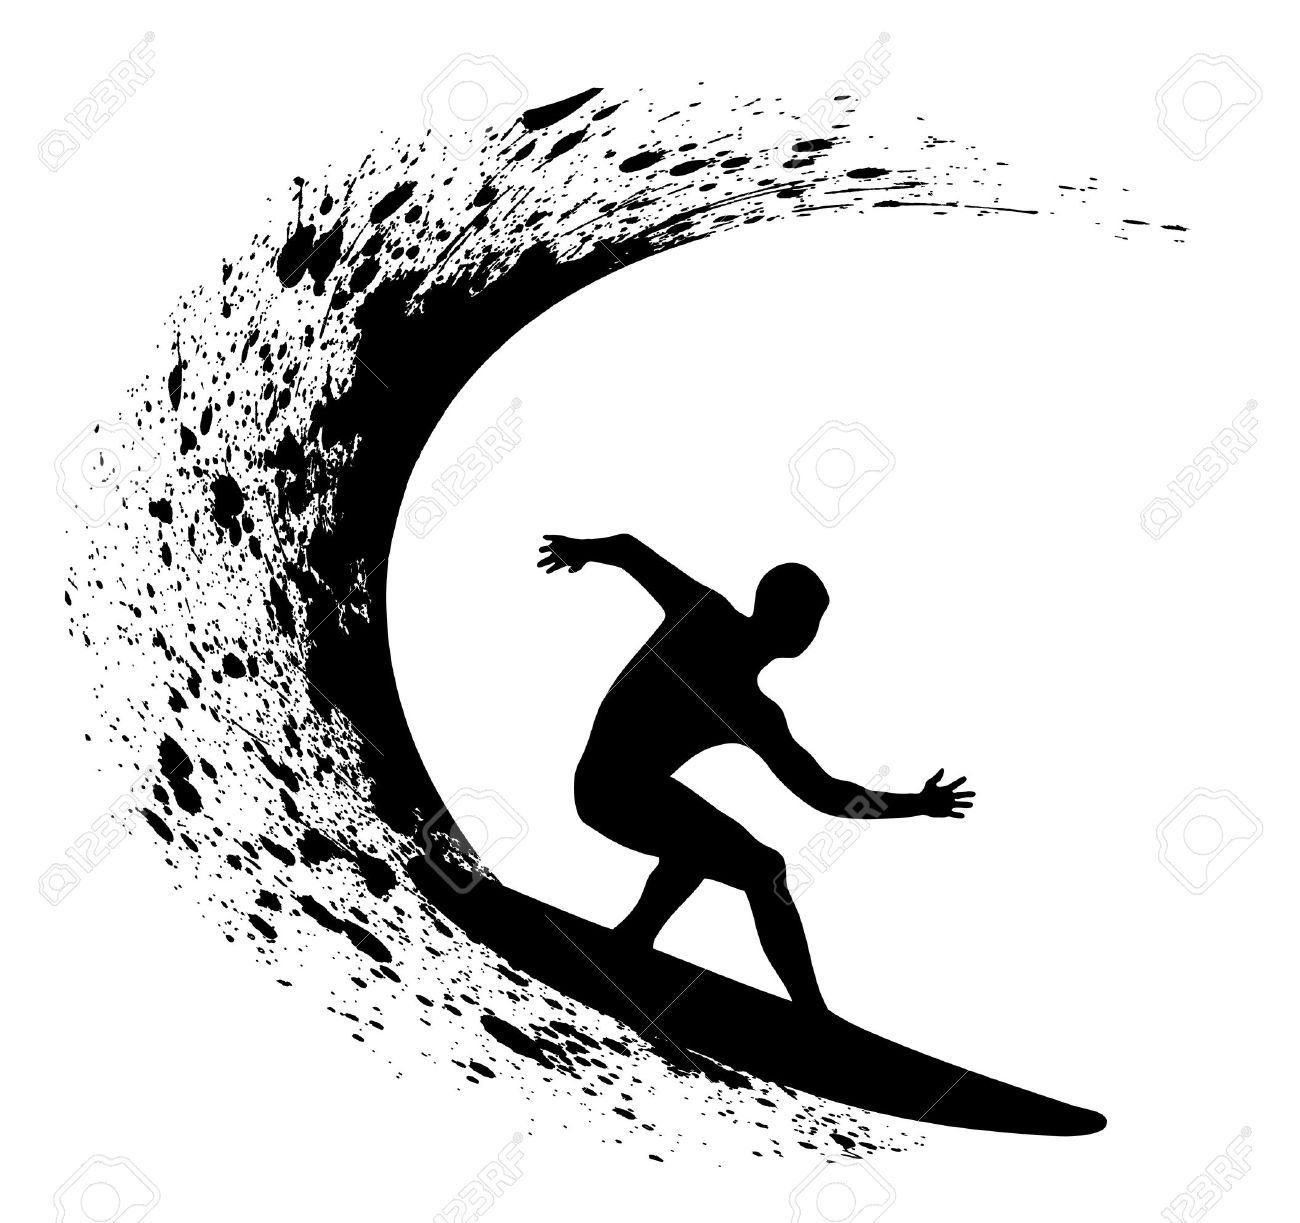 Surfer Clipart Vector